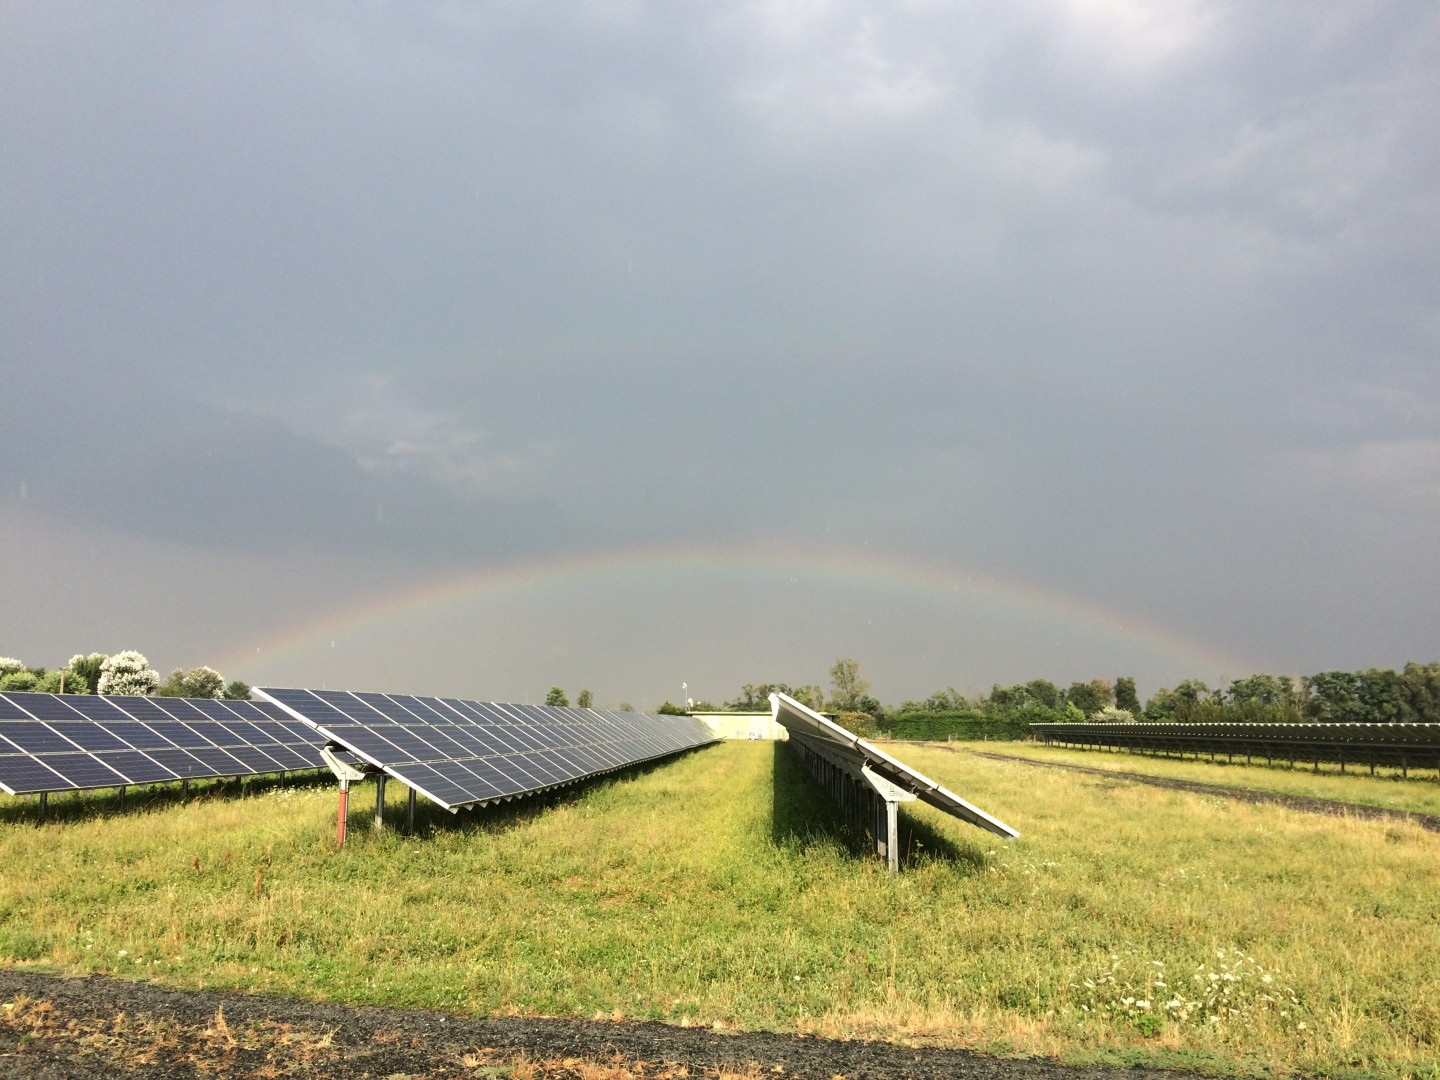 DSM's AR coatings can be applied on older PV panels in existing solar parks that use modules without an AR coating. Image: DSM